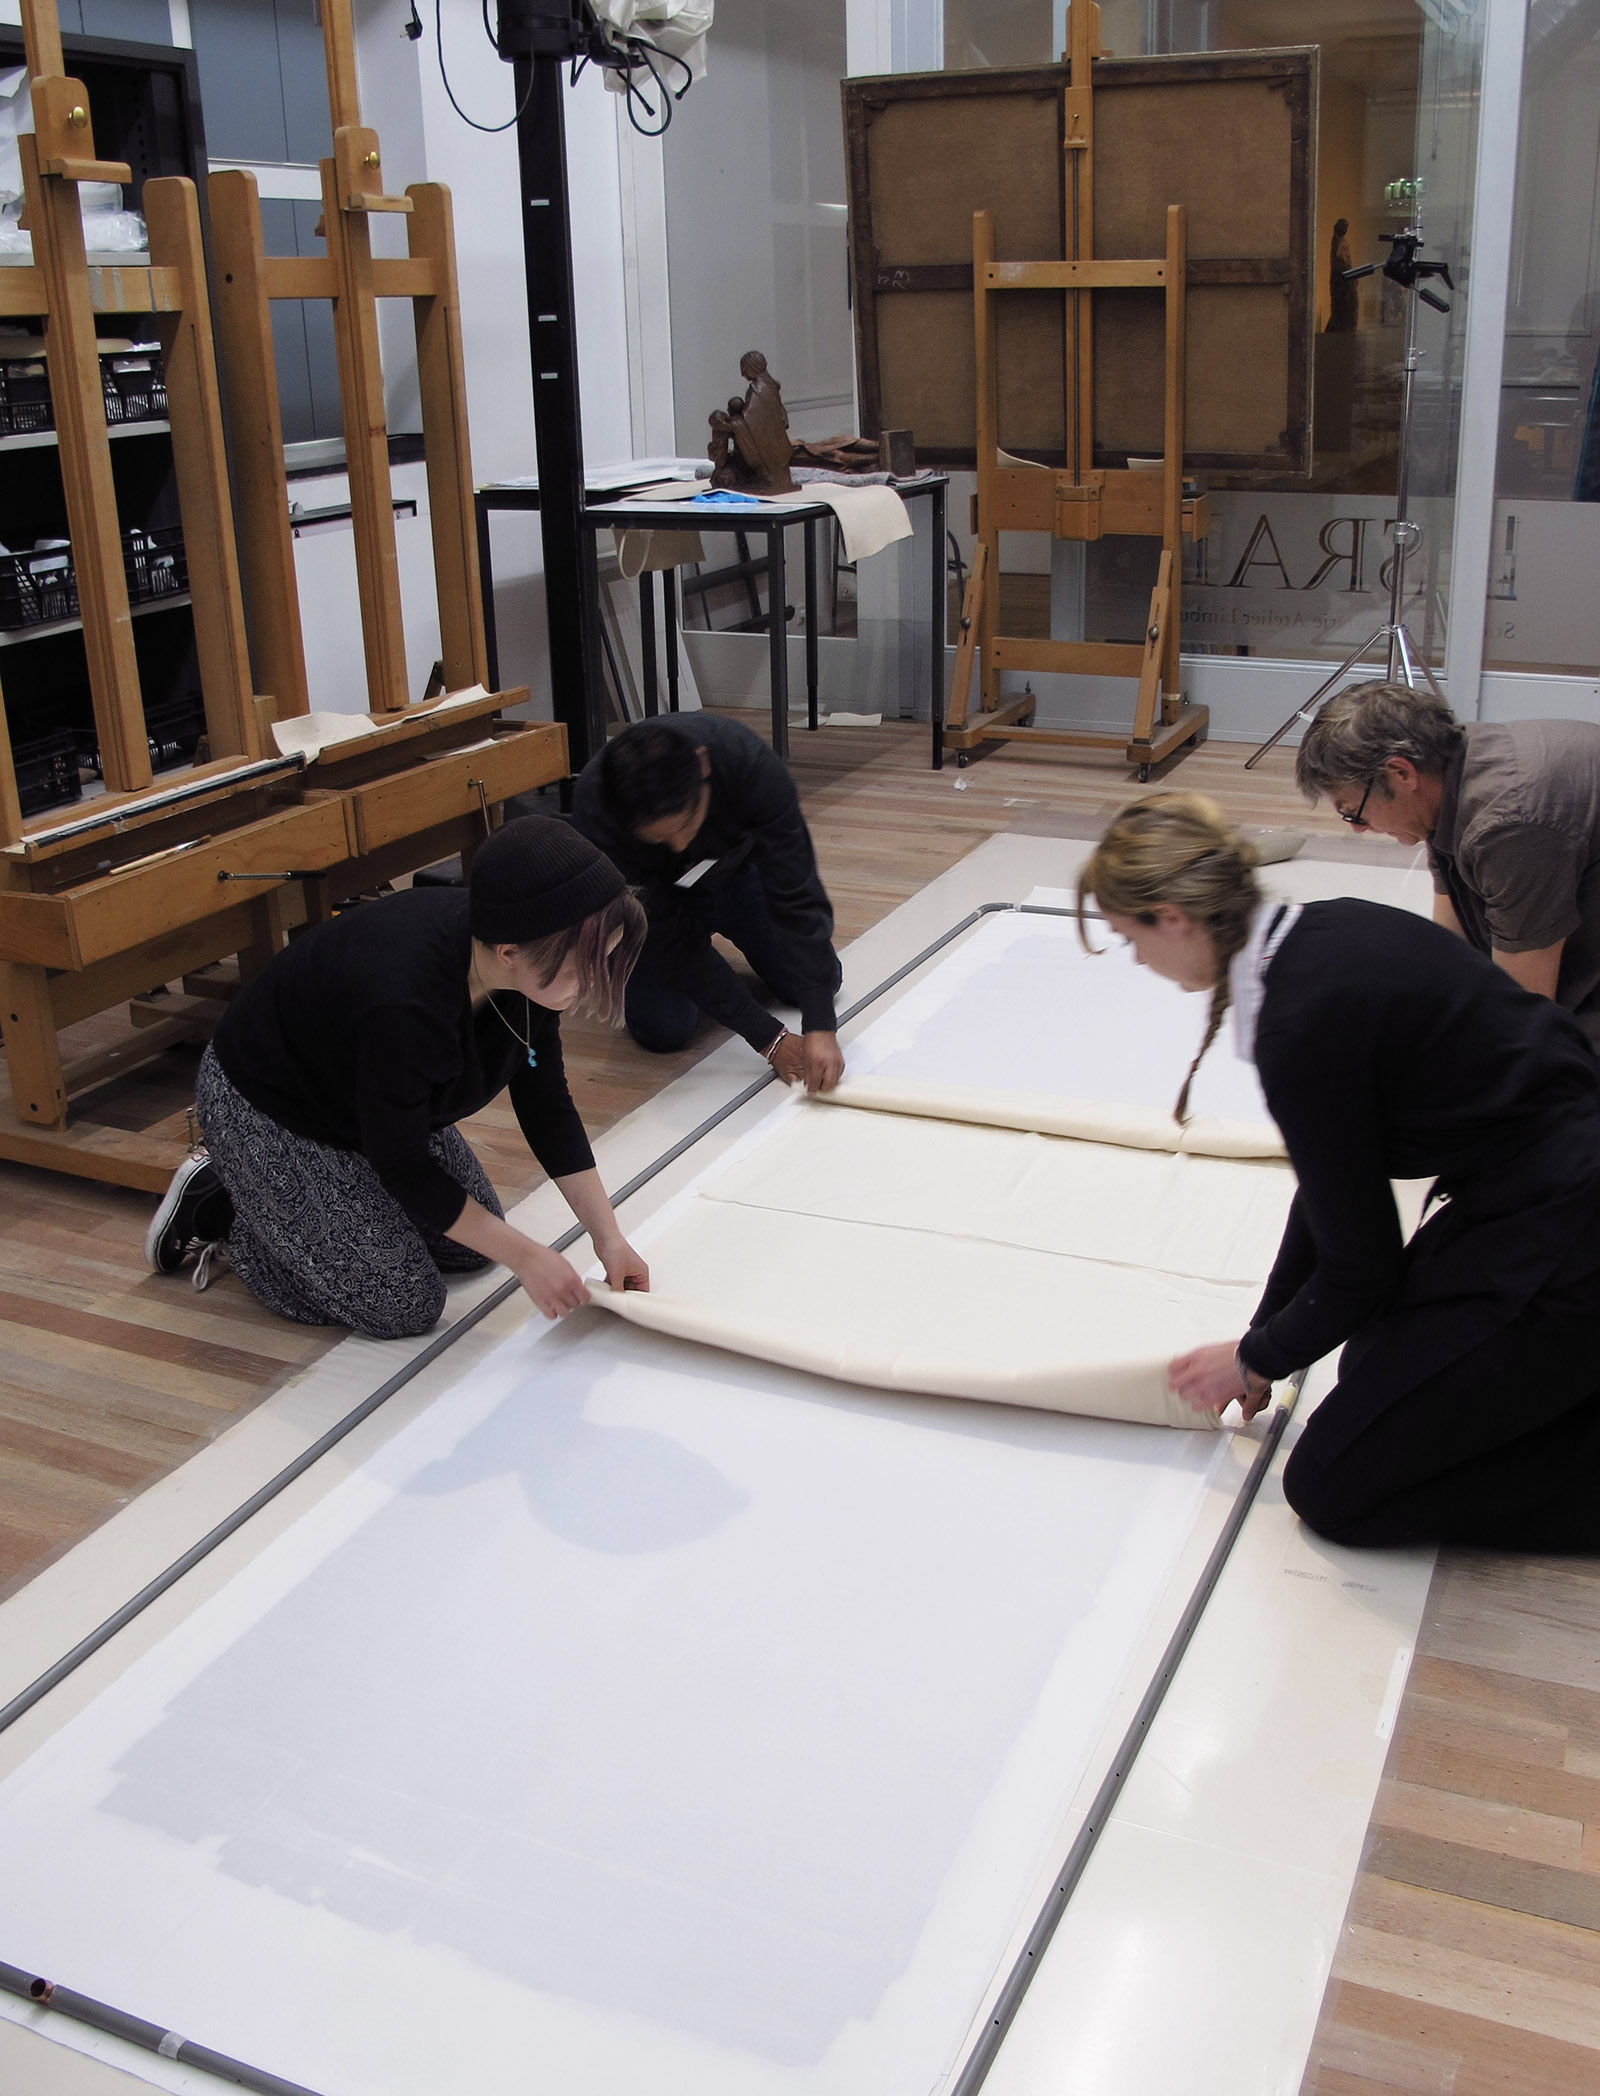 Four conservators sit on the floor and prepare a canvas lining.